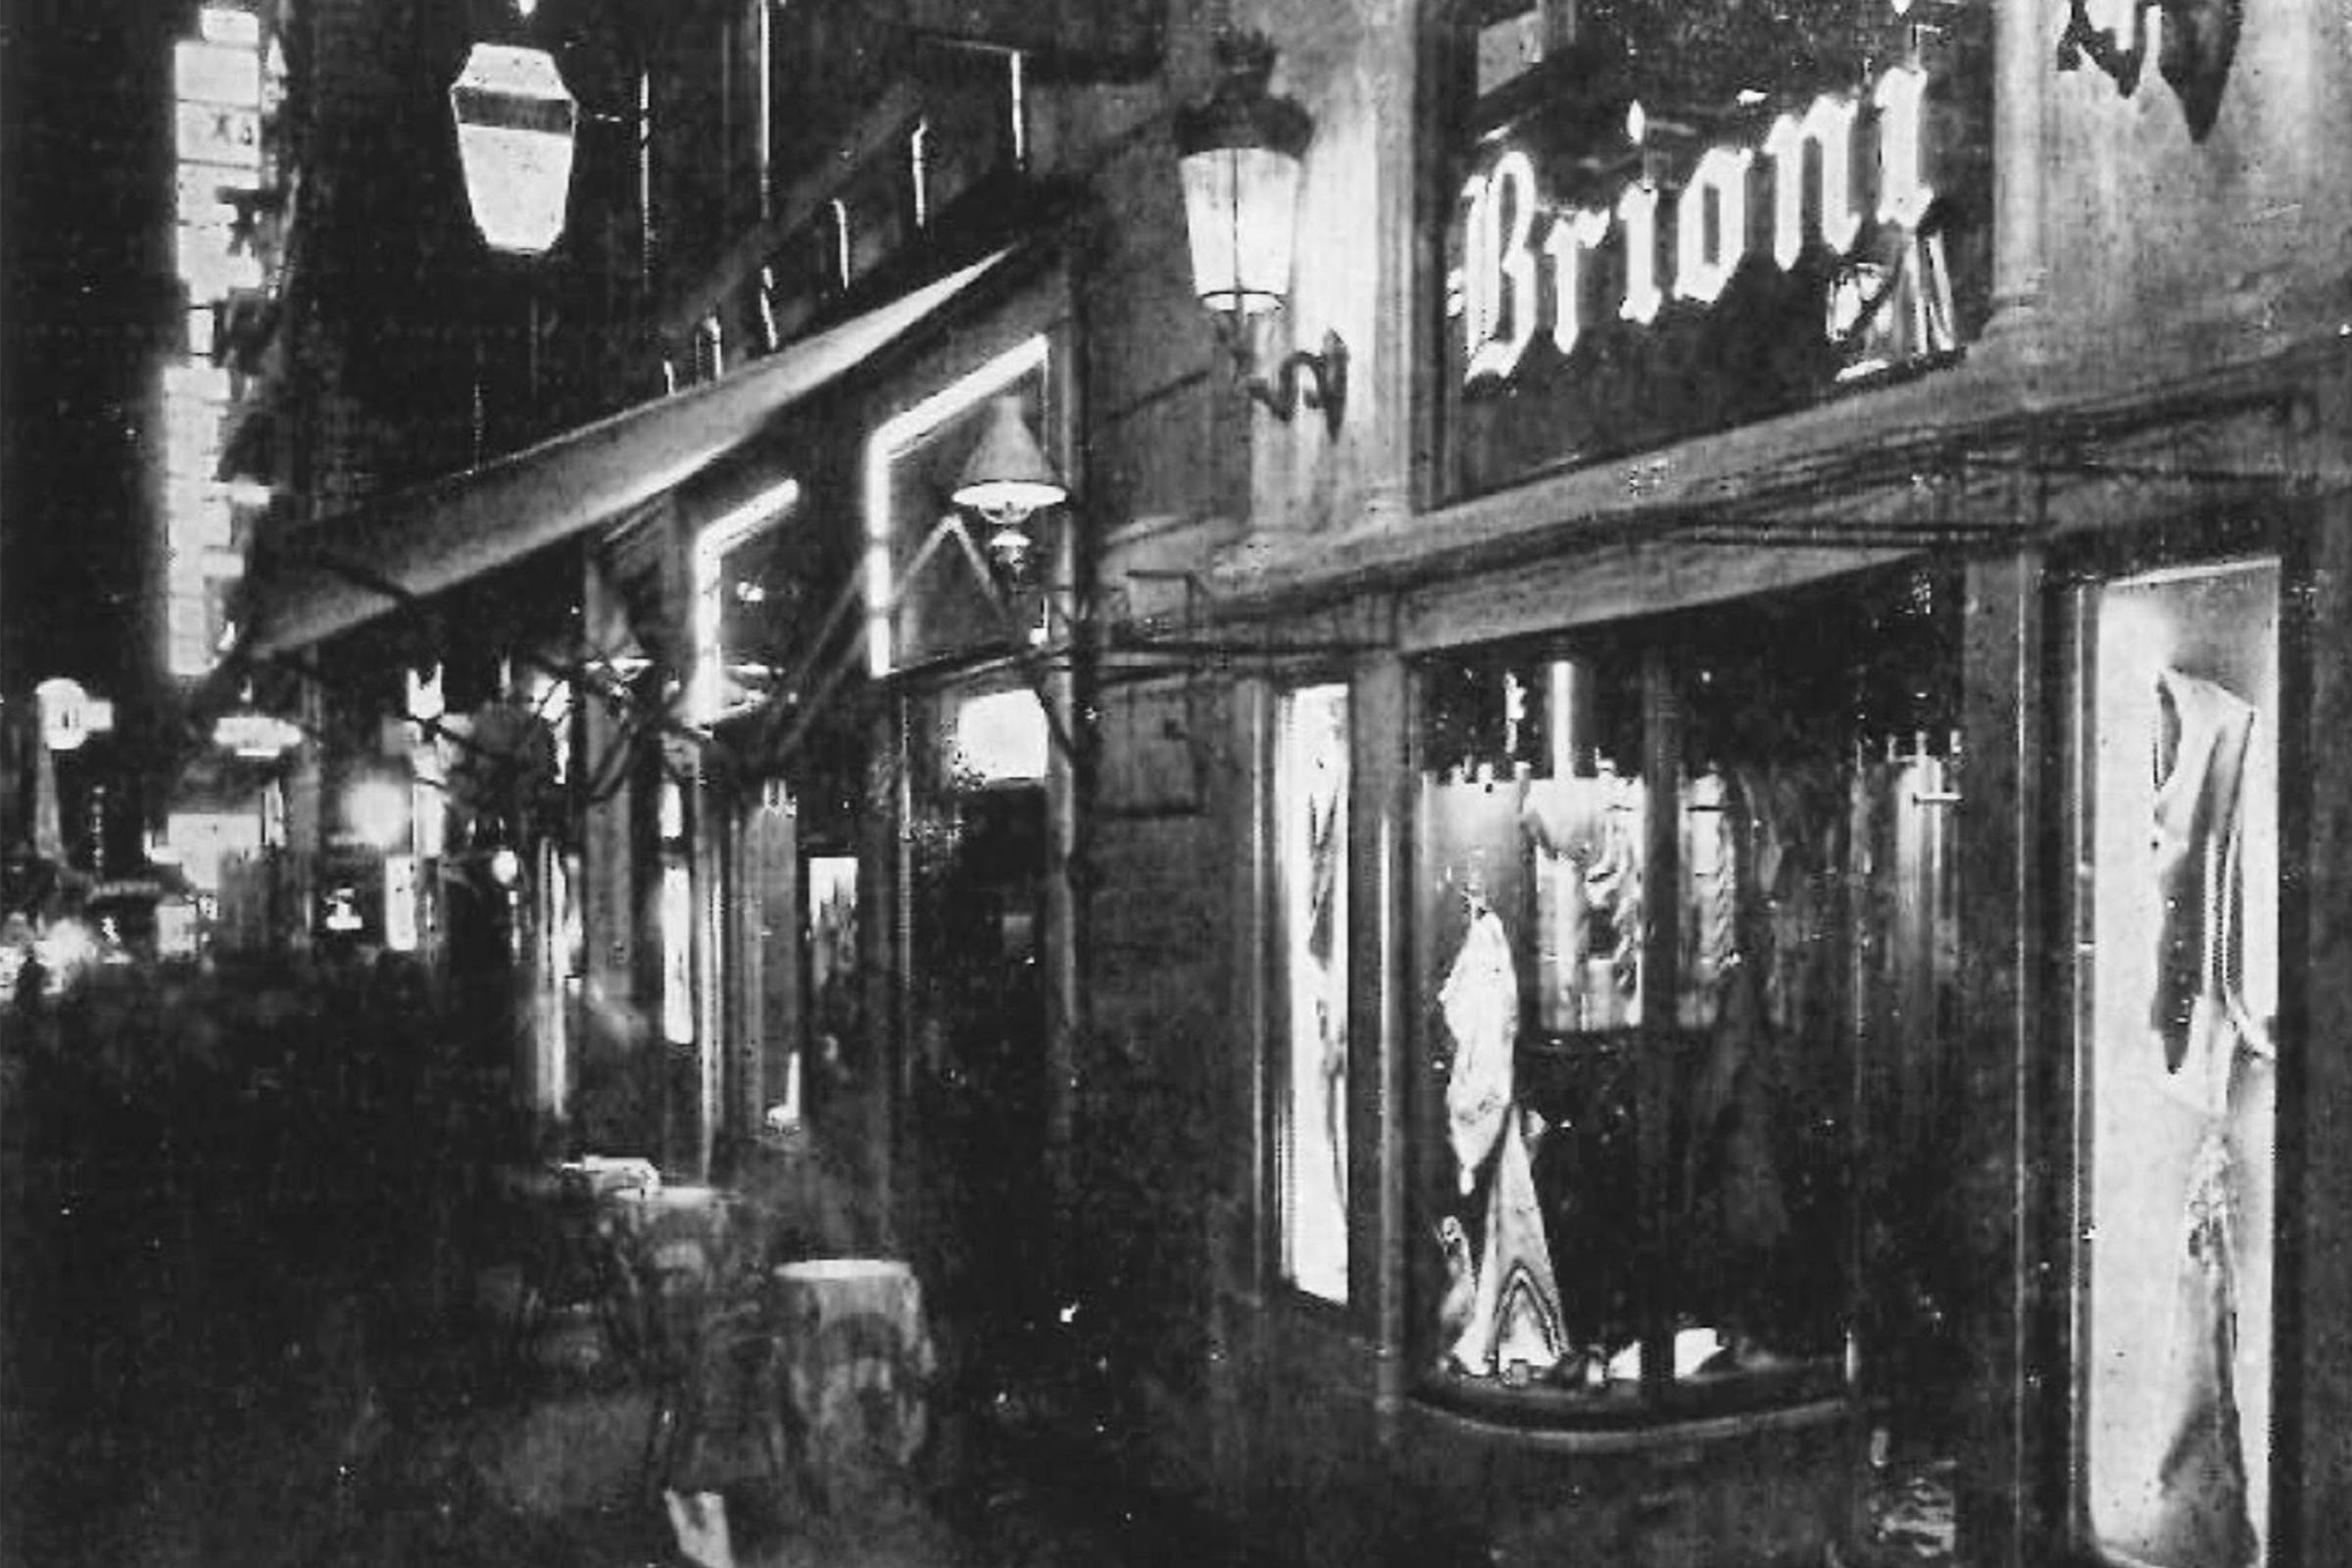 The original Brioni boutique, c. 1945